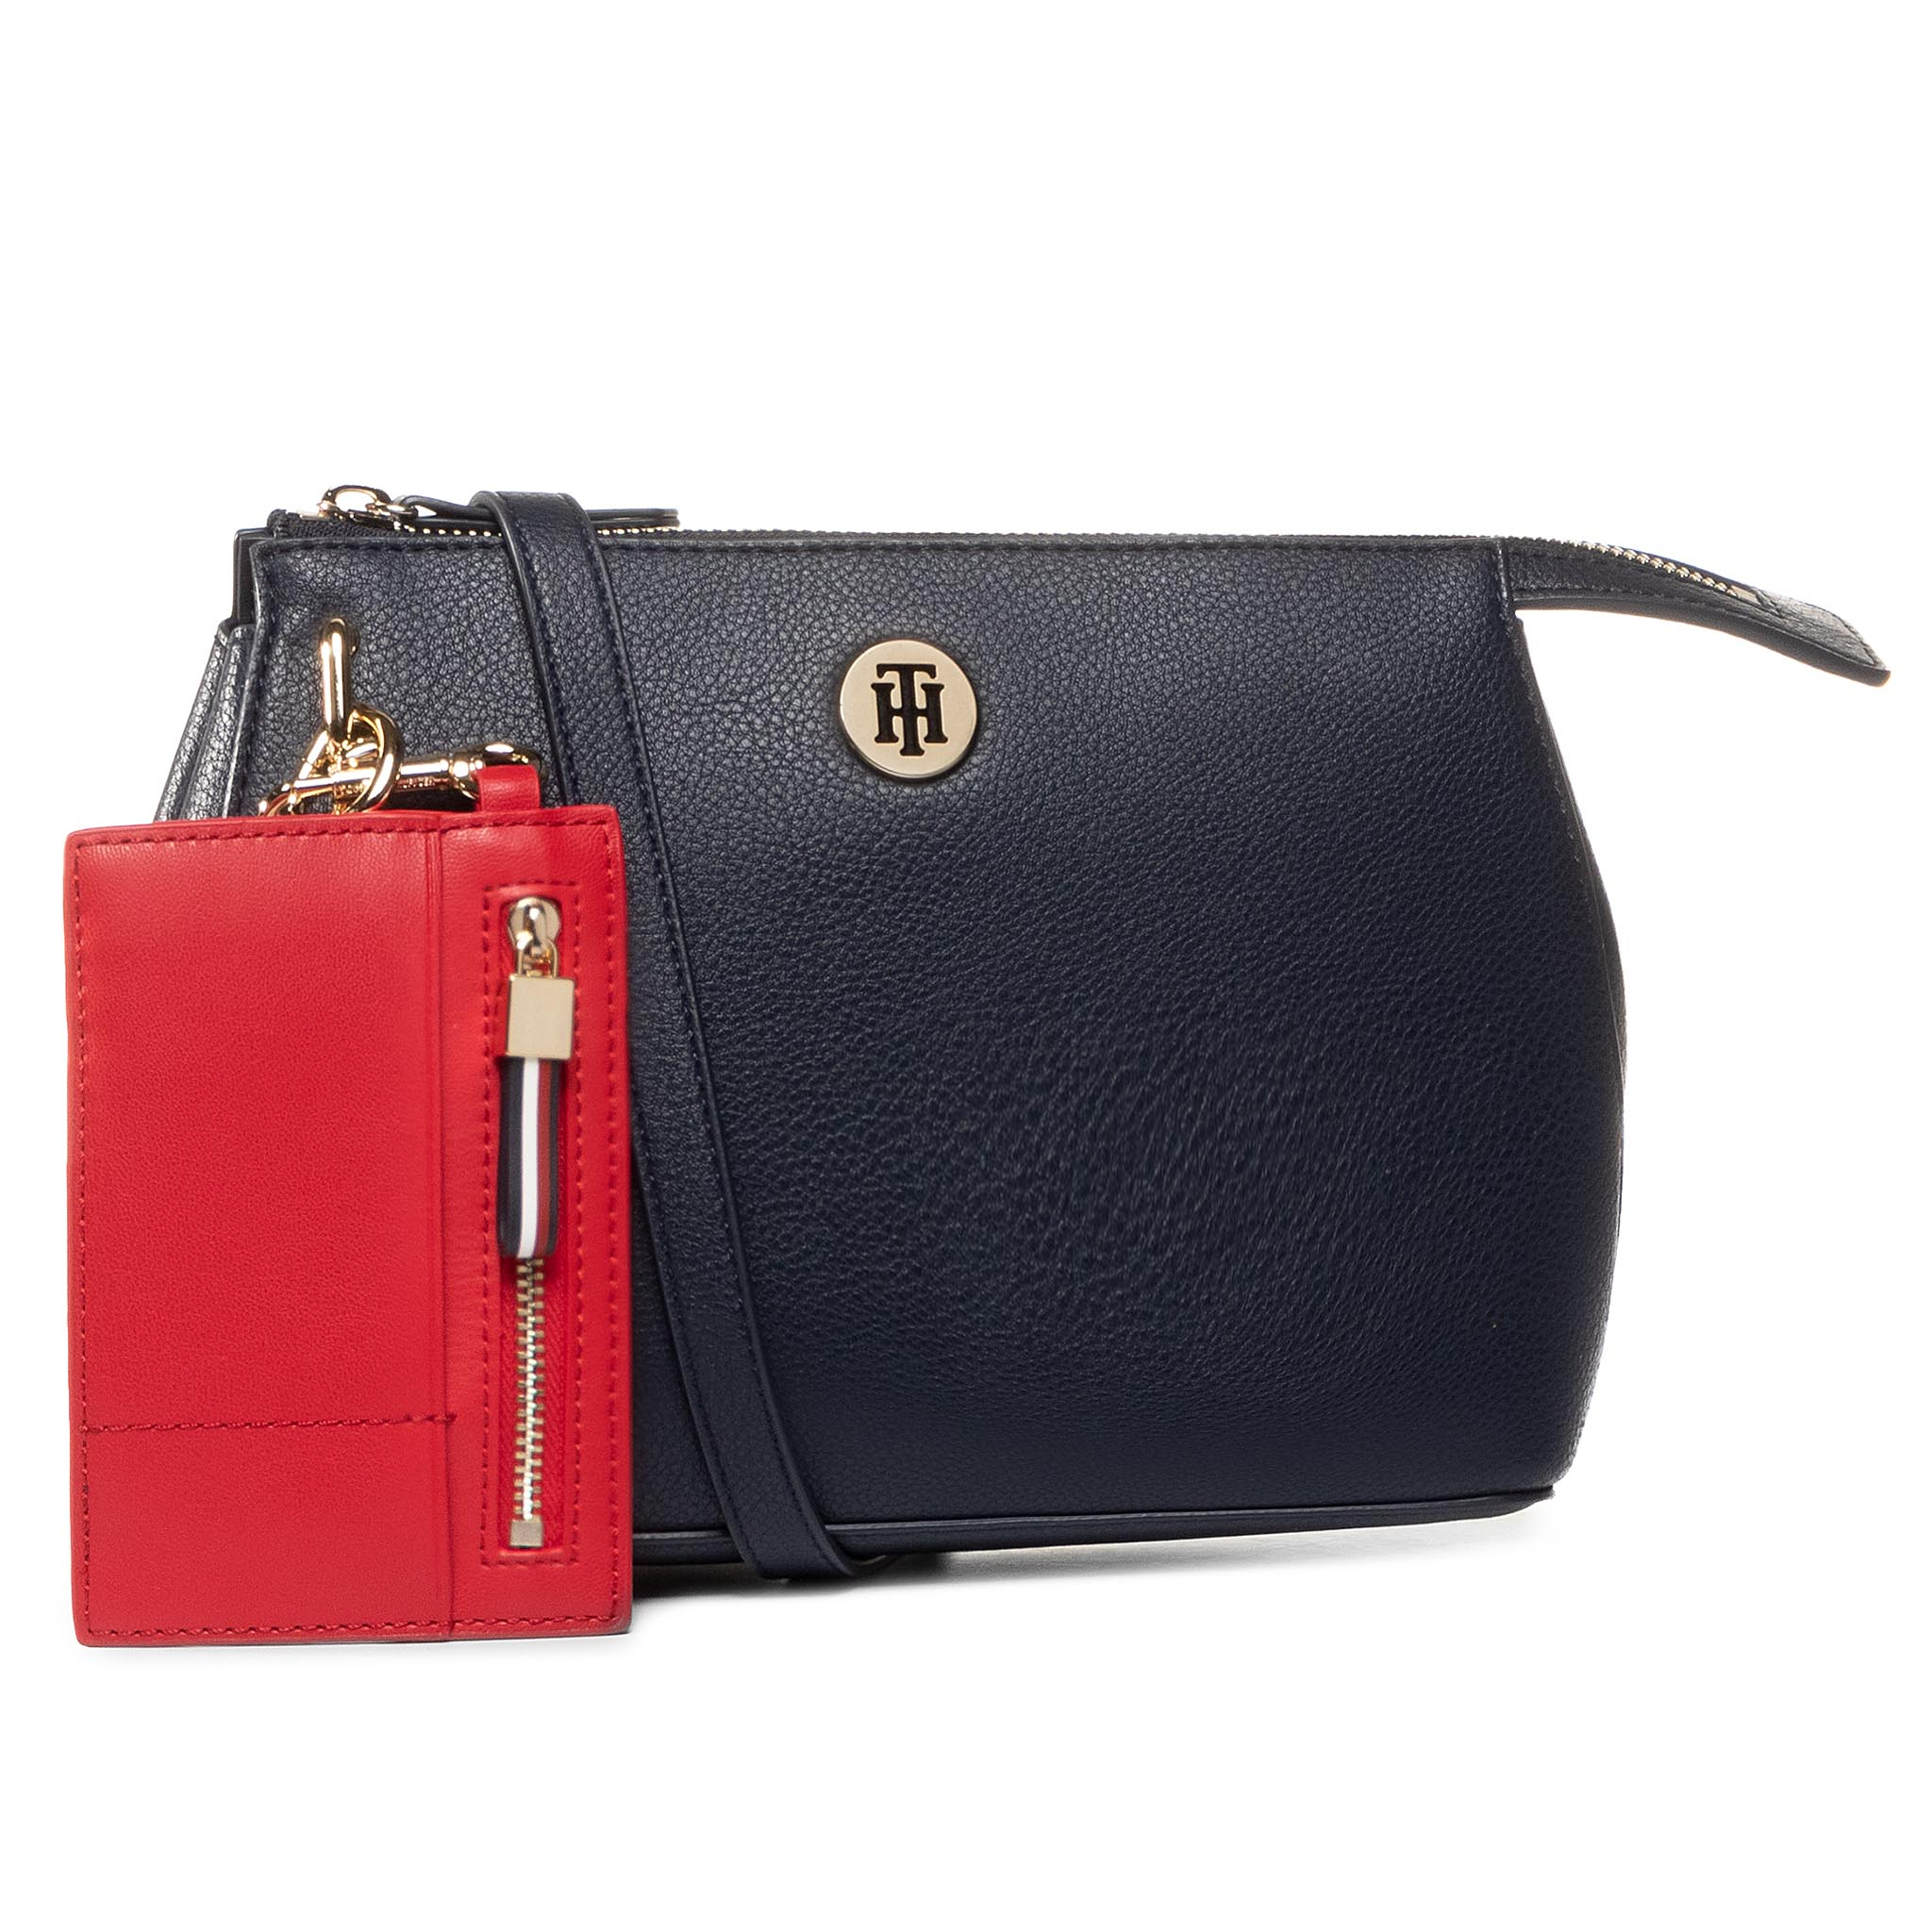 Geantă TOMMY HILFIGER - Charming Tommy Crossover AW0AW08157 CJM